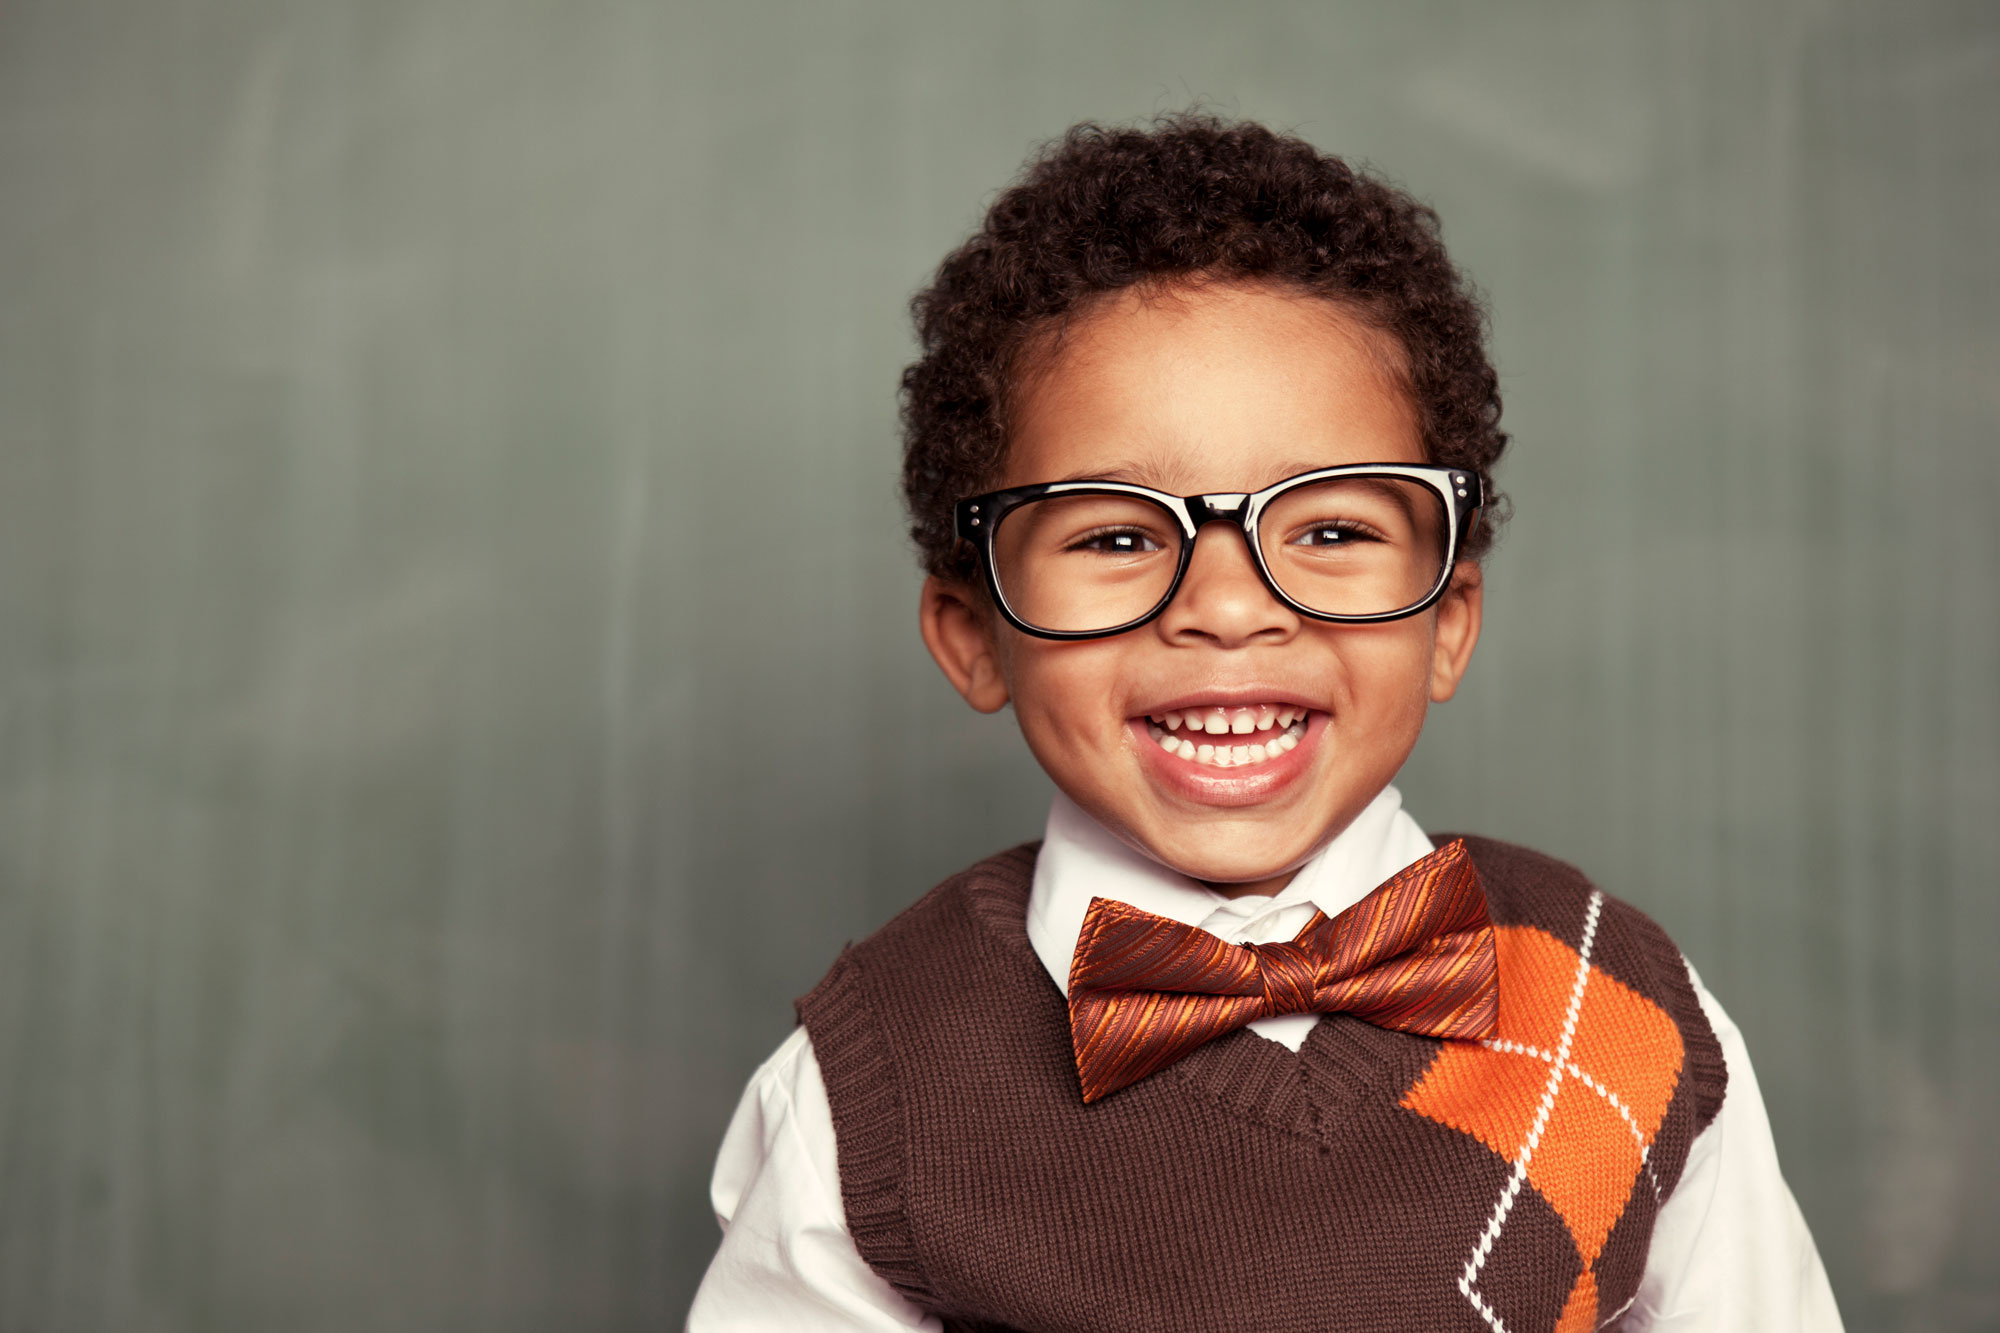 Happy toddler smiling wearing glasses and a bow tie.